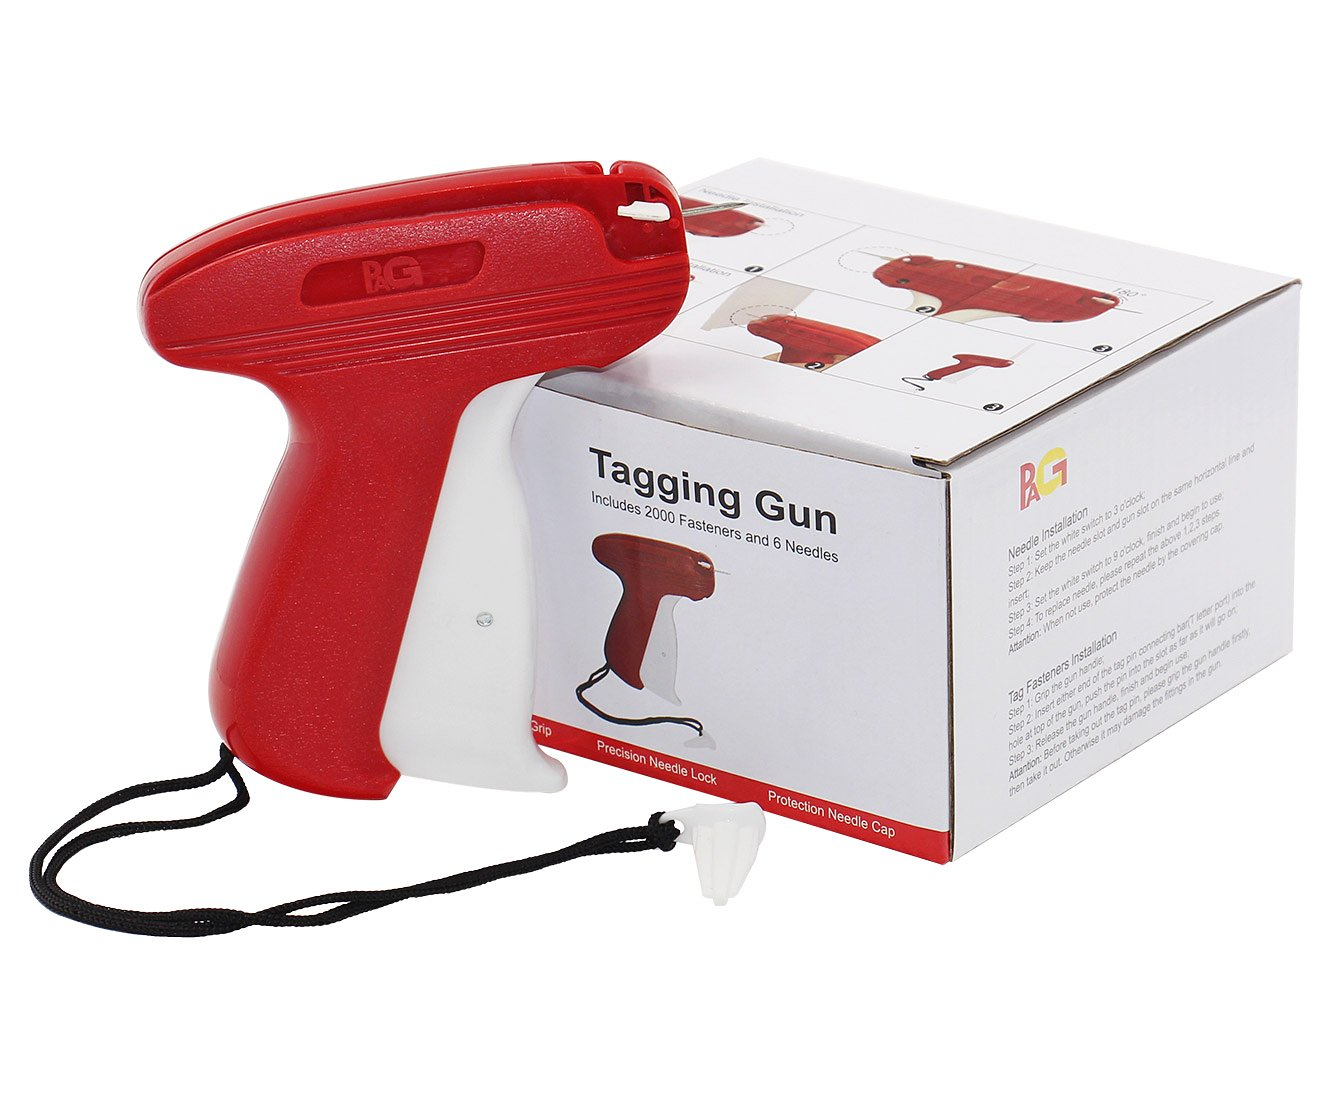 PAG New Upgrade Fine Tagging Gun Price Tag Attacher Gun for Clothing with 6 Needls and 2000 2 Barbs Fasteners Red